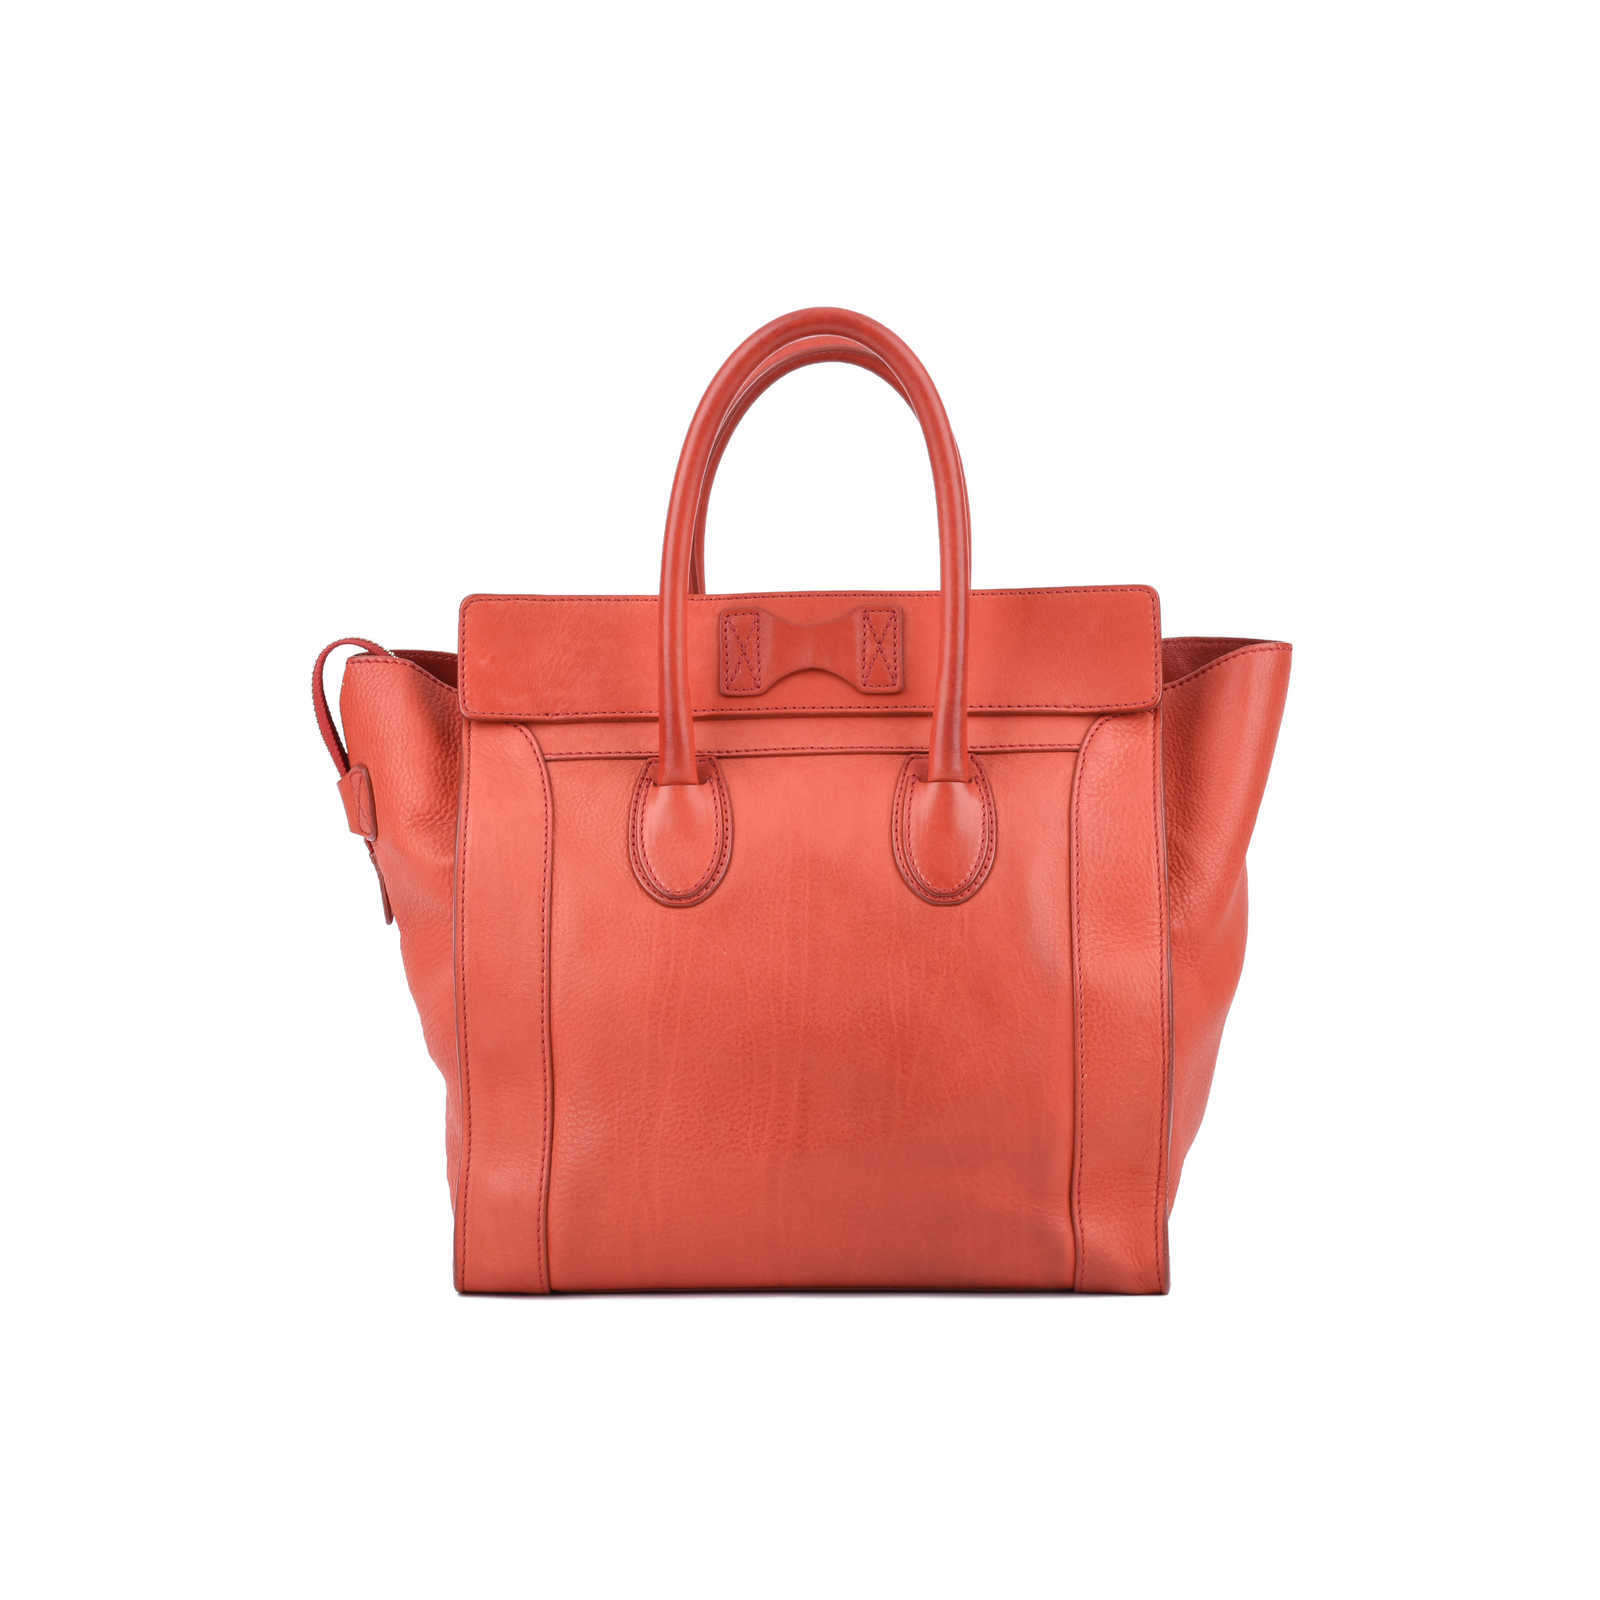 f207f96ab533 ... Authentic Second Hand Céline Mini Luggage Tote (PSS-436-00002) -  Thumbnail ...